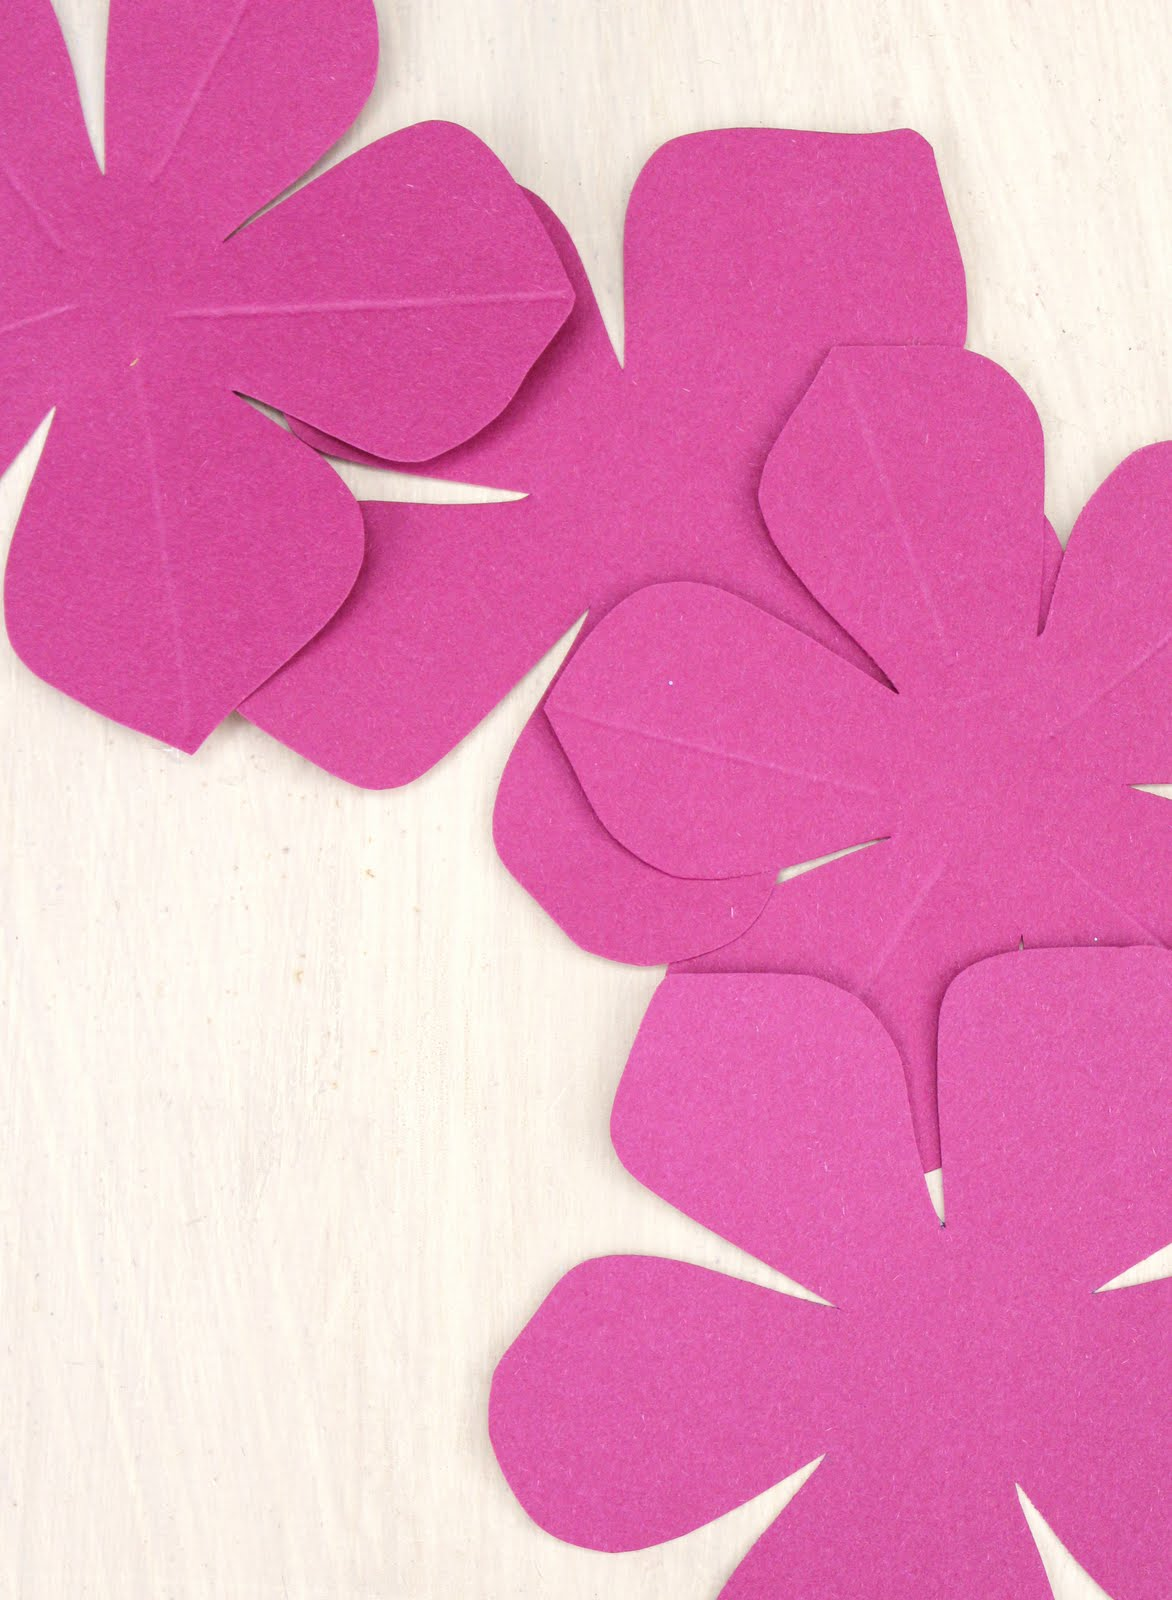 diy paper flower templates - Selo.l-ink.co